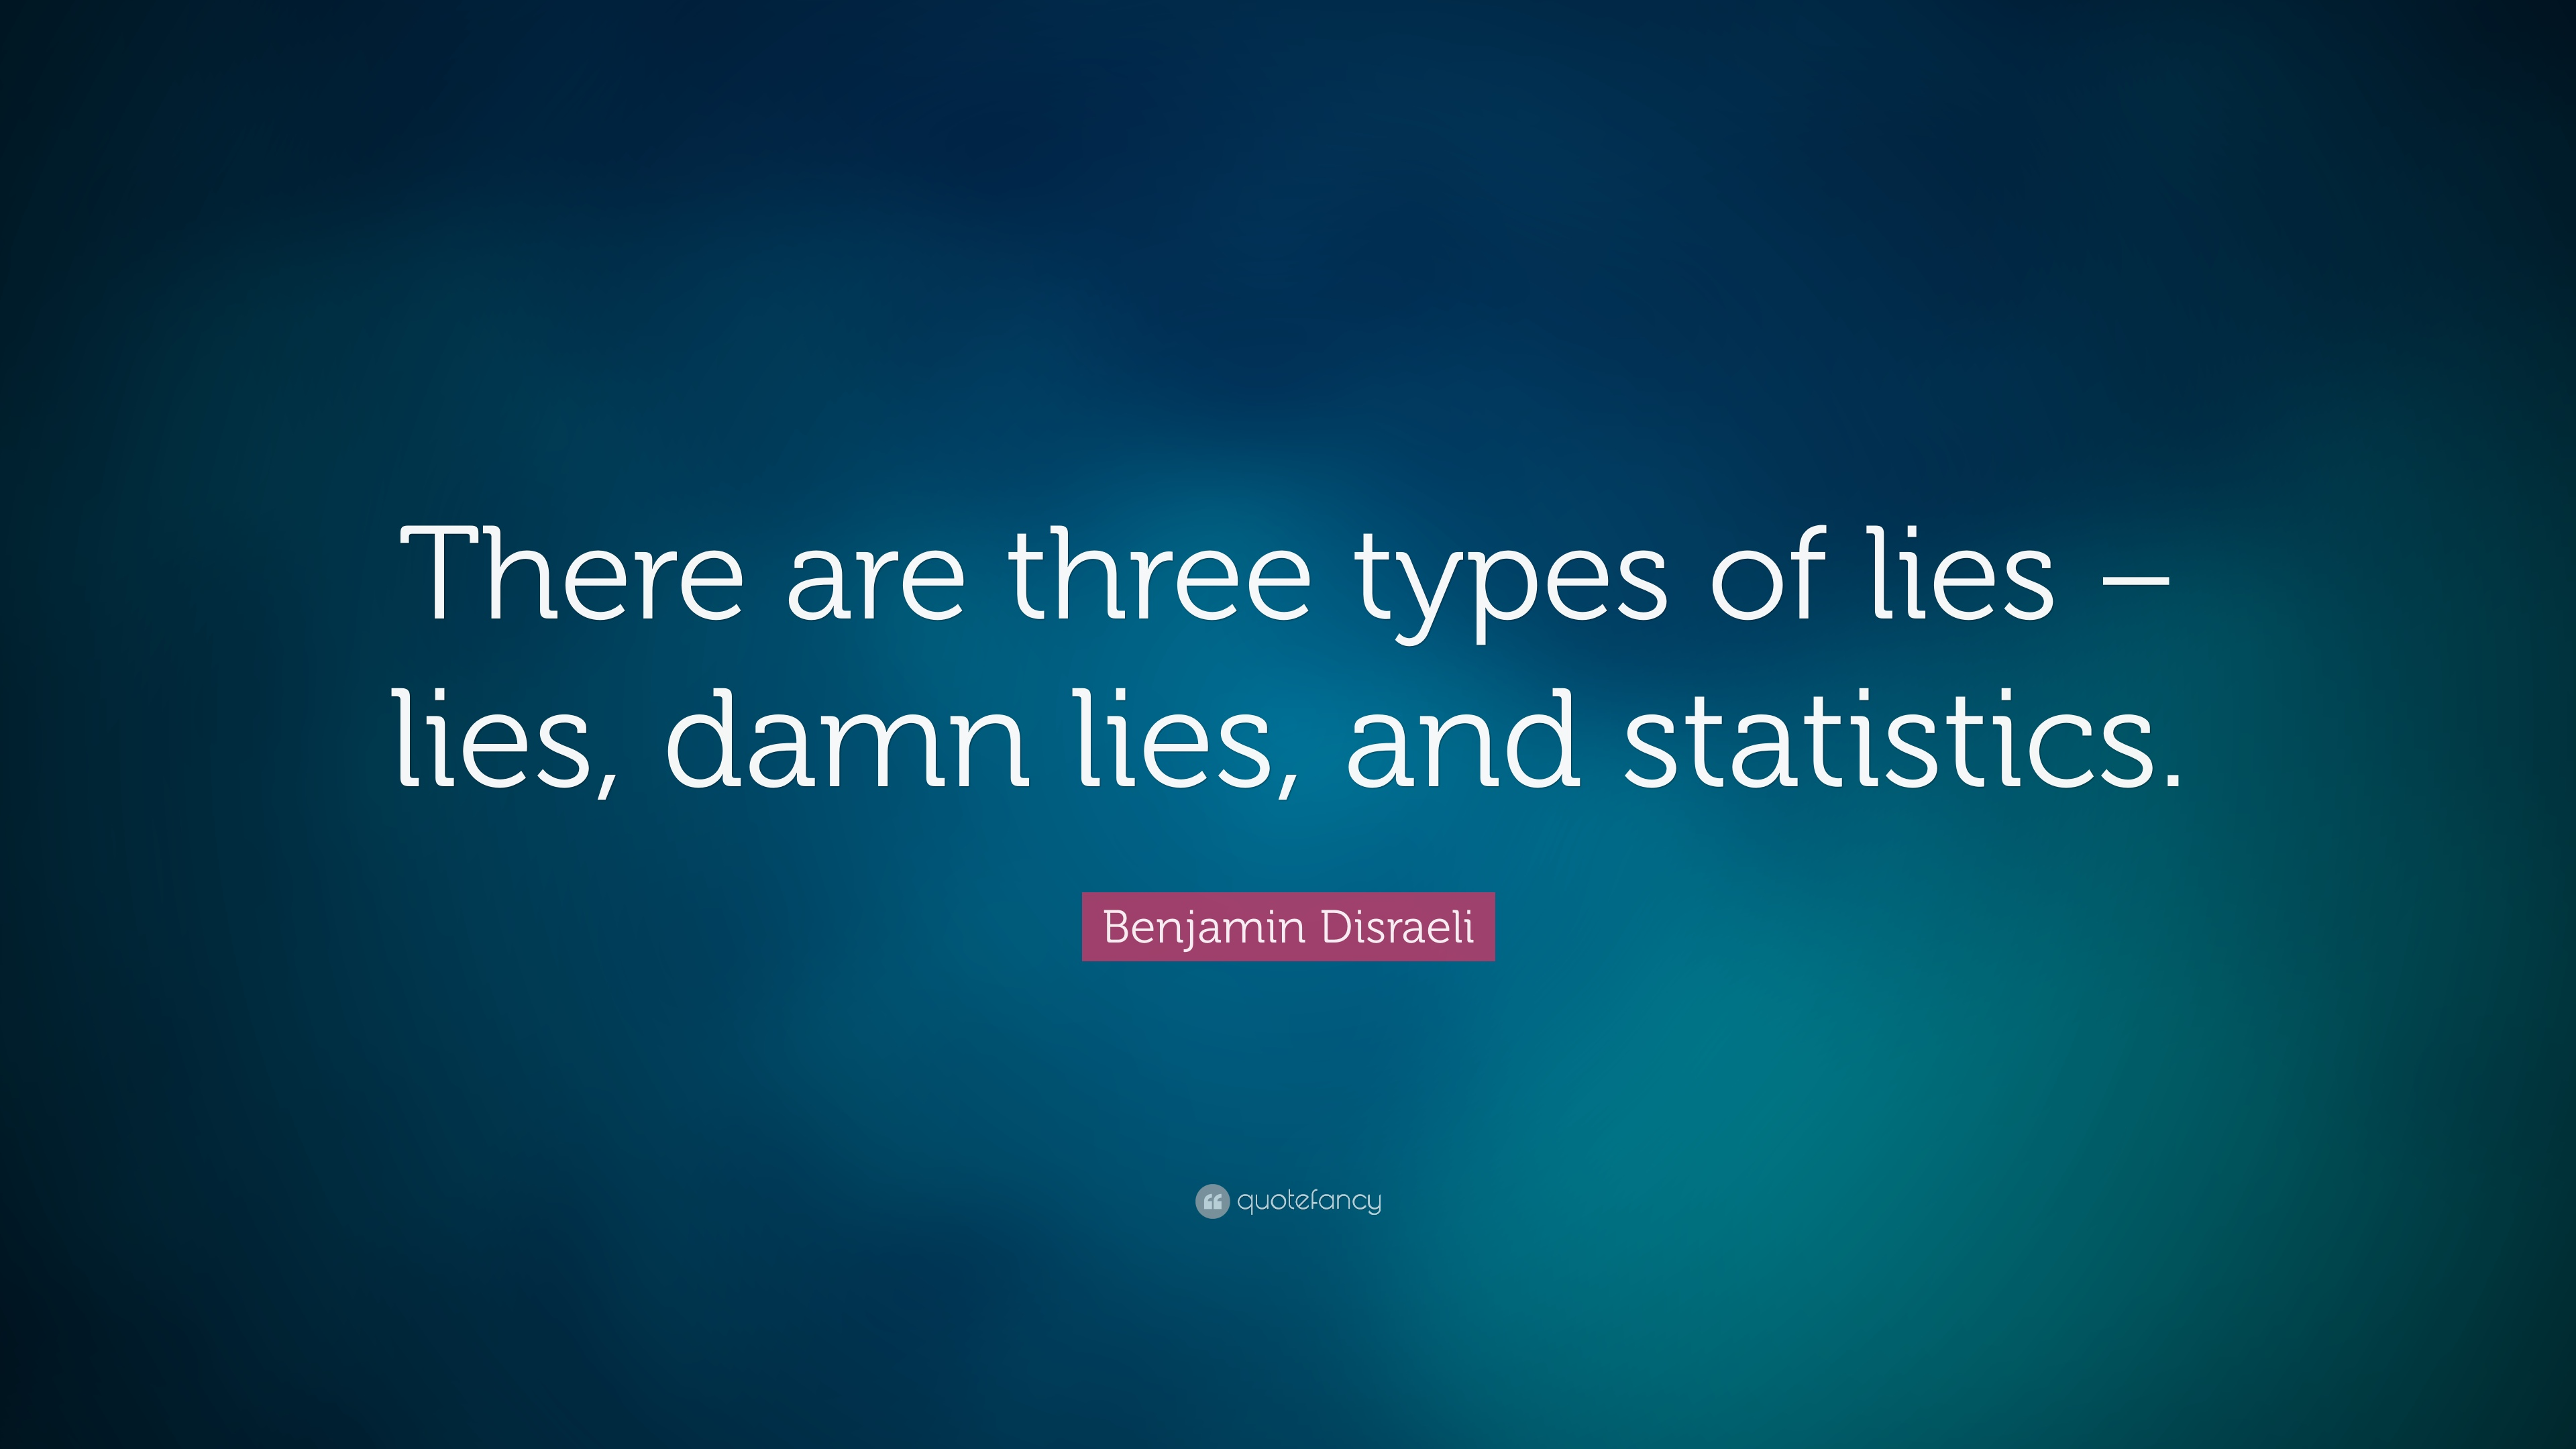 """There are three kinds of lies: lies, damned lies, and statistics"" – Benjamin Disraeli [3053*1569]"